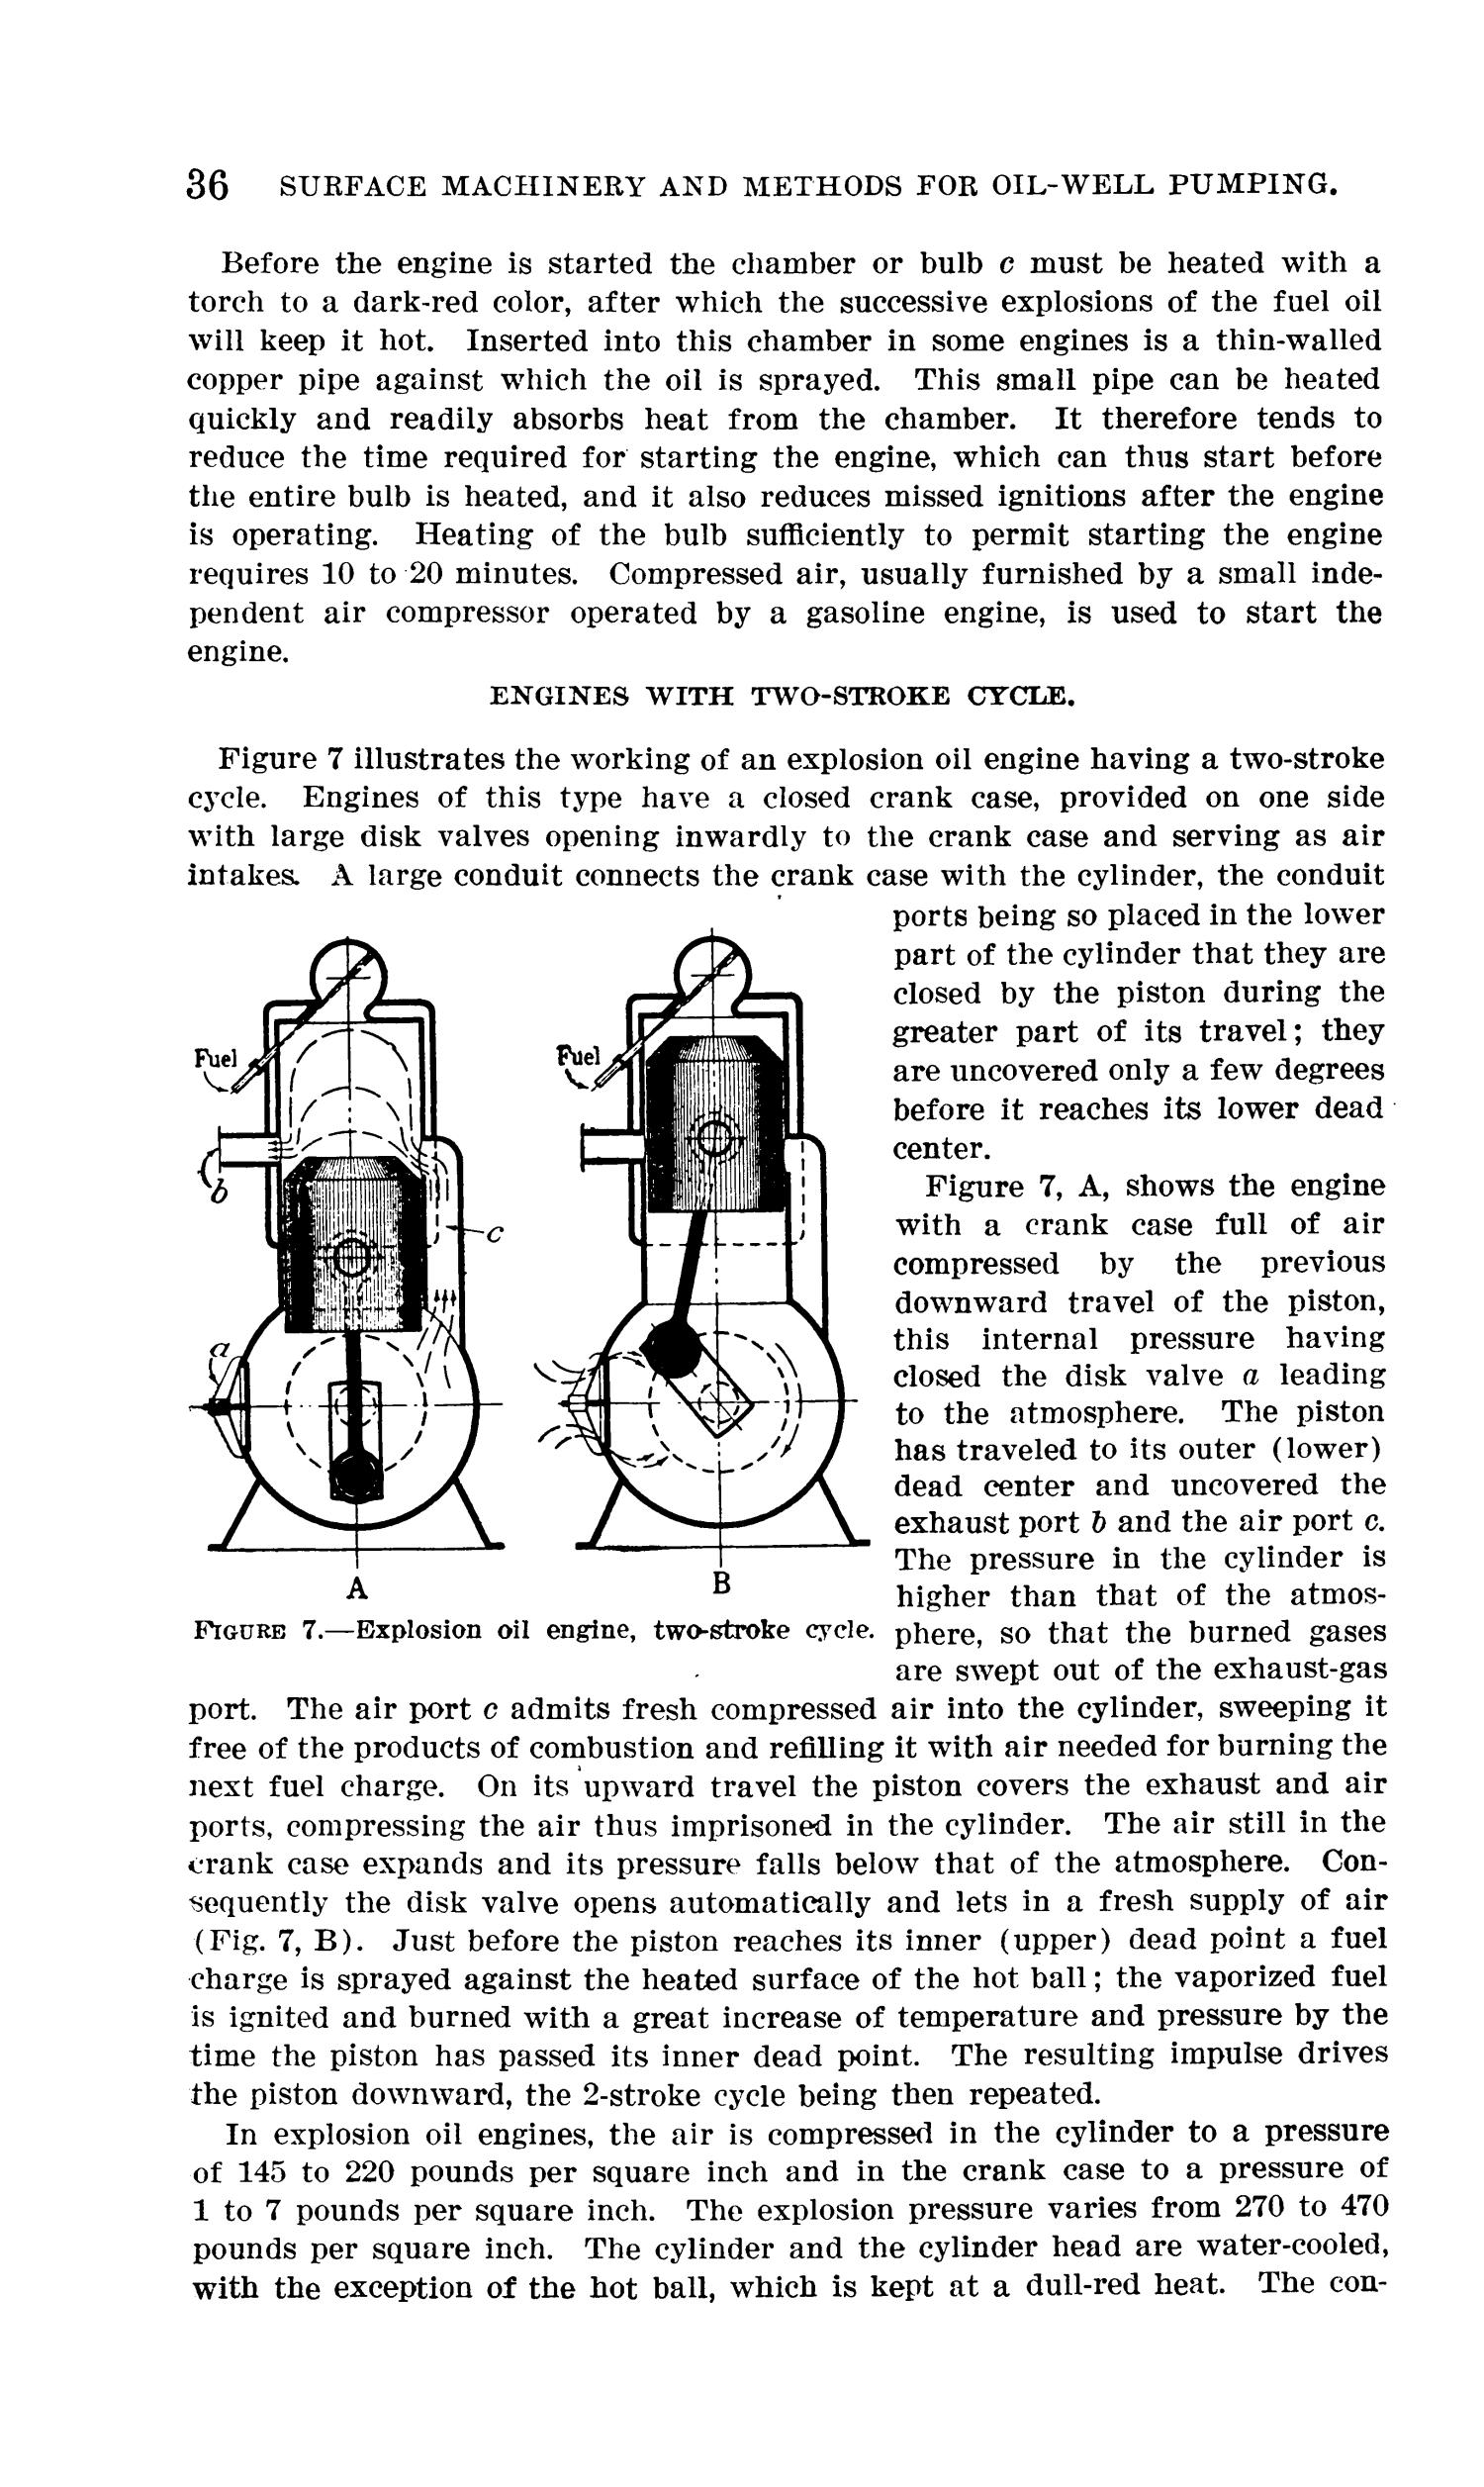 Surface Machinery and Methods for Oil-Well Pumping                                                                                                      36